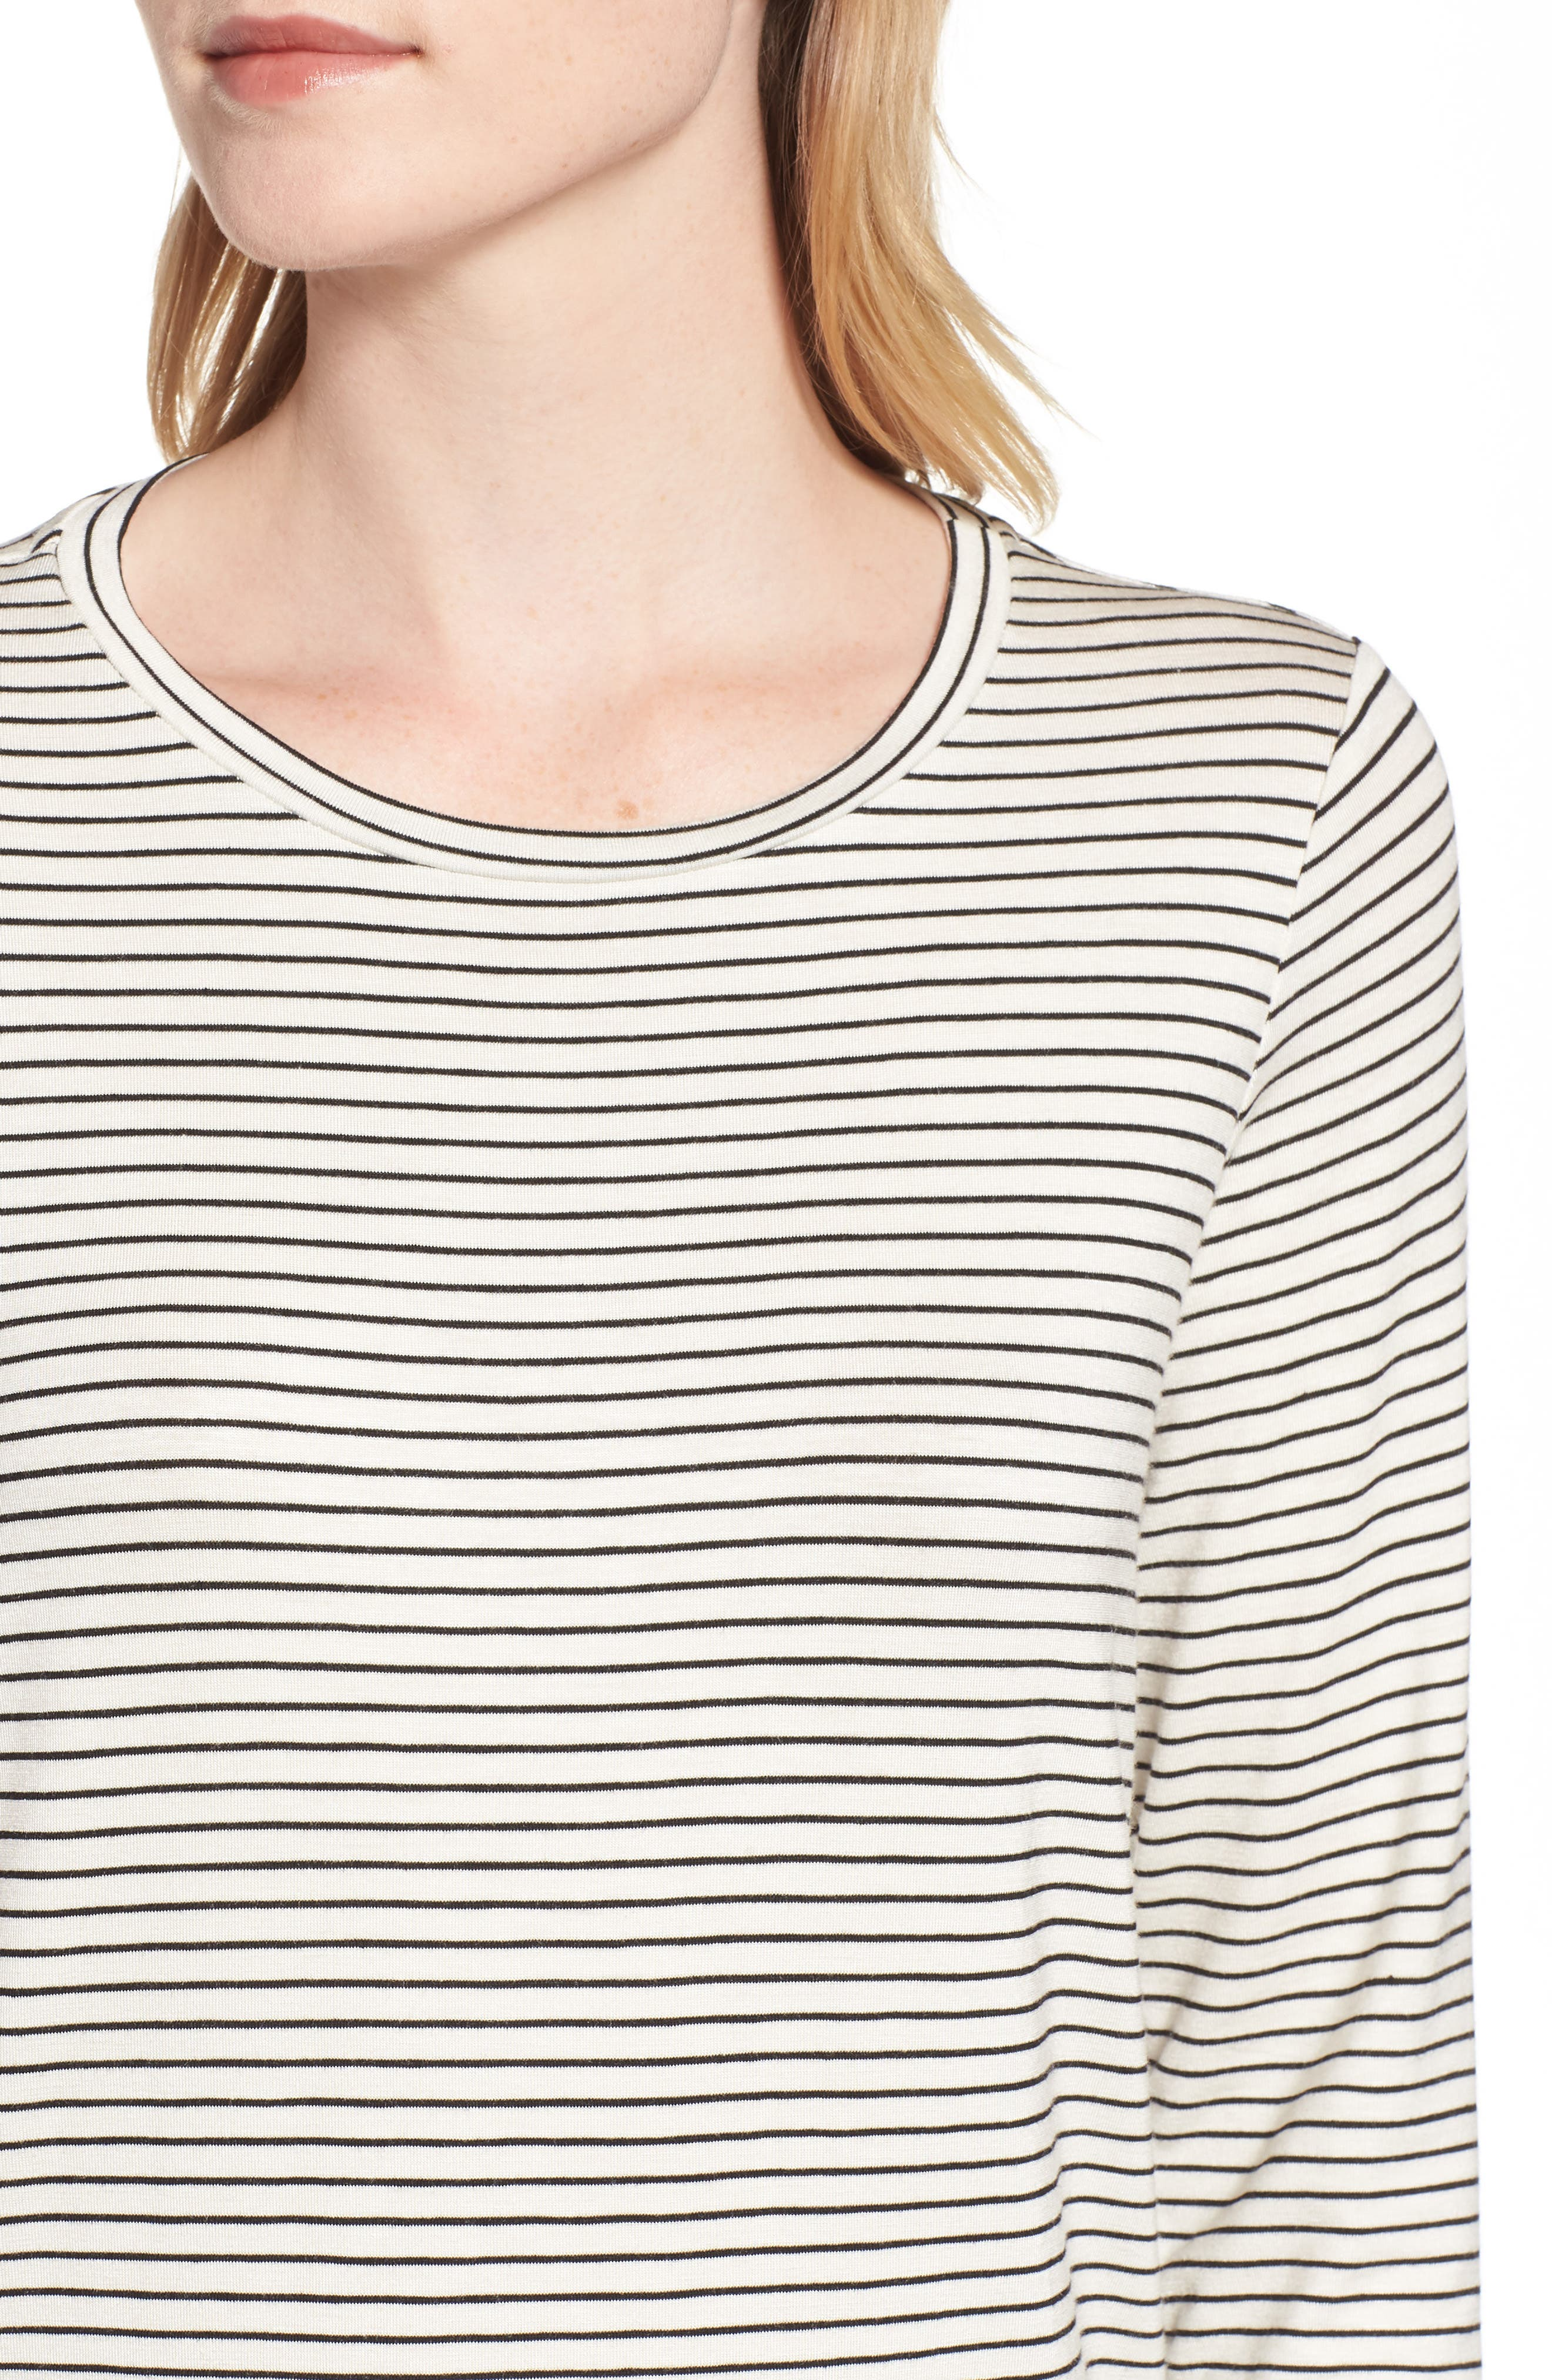 GIBSON, x Living in Yellow Alice Stripe Jersey Top, Alternate thumbnail 4, color, IVORY/ BLACK